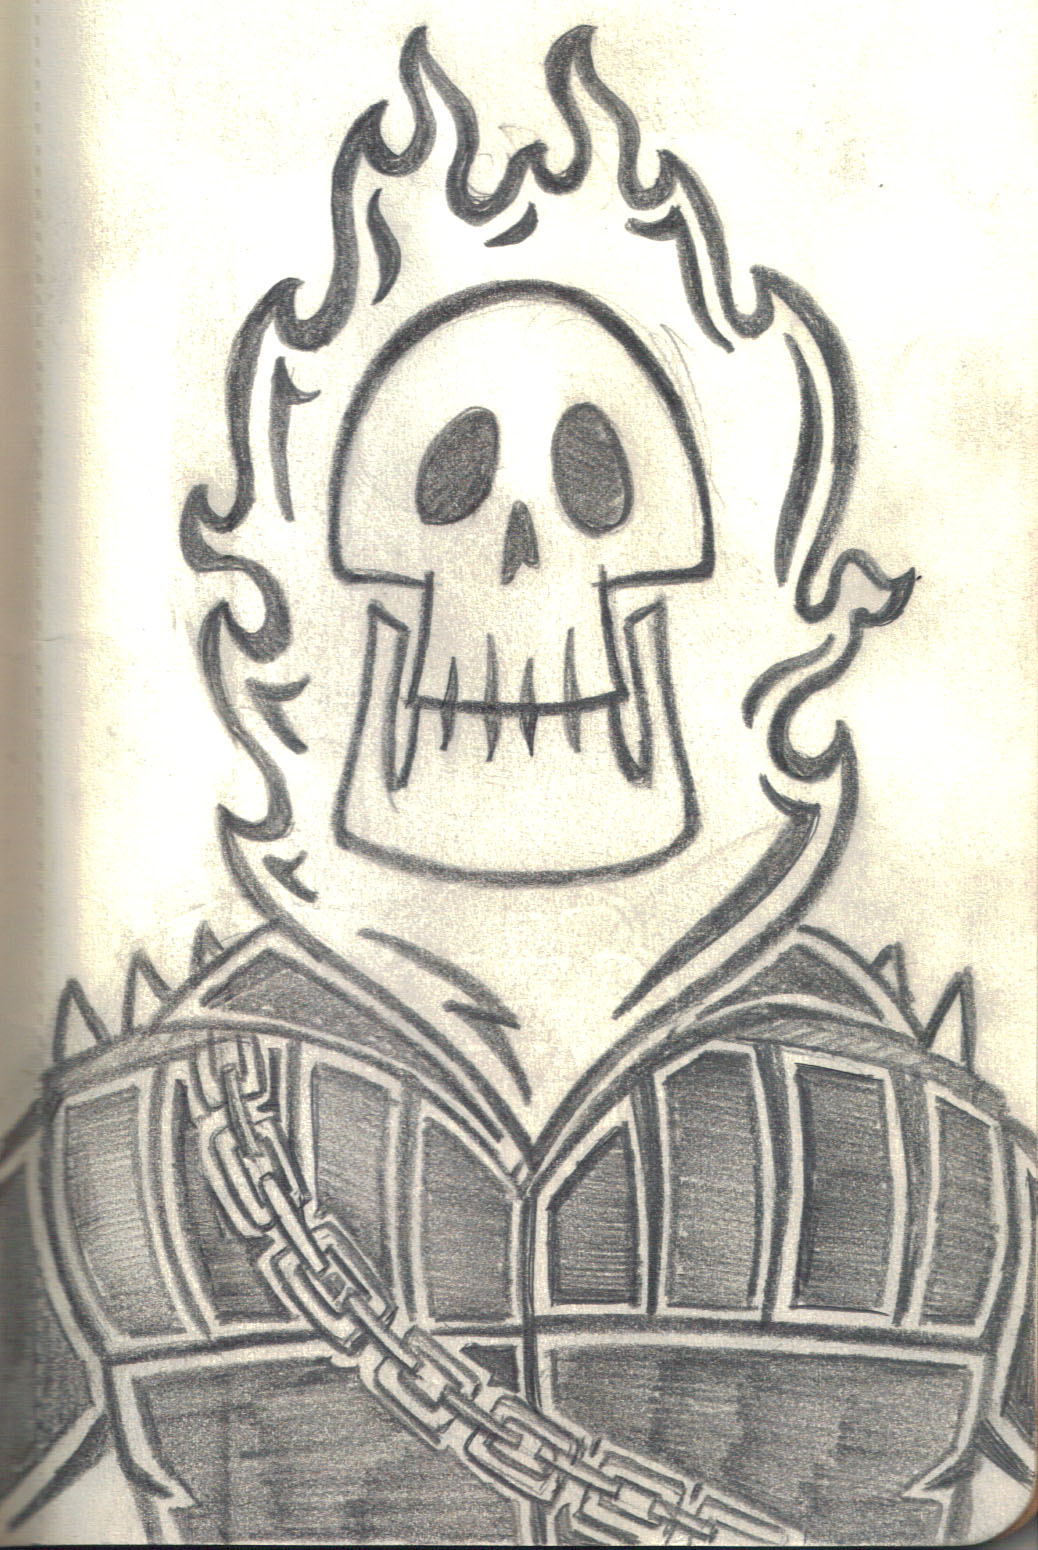 Ghost Rider drawing.jpg